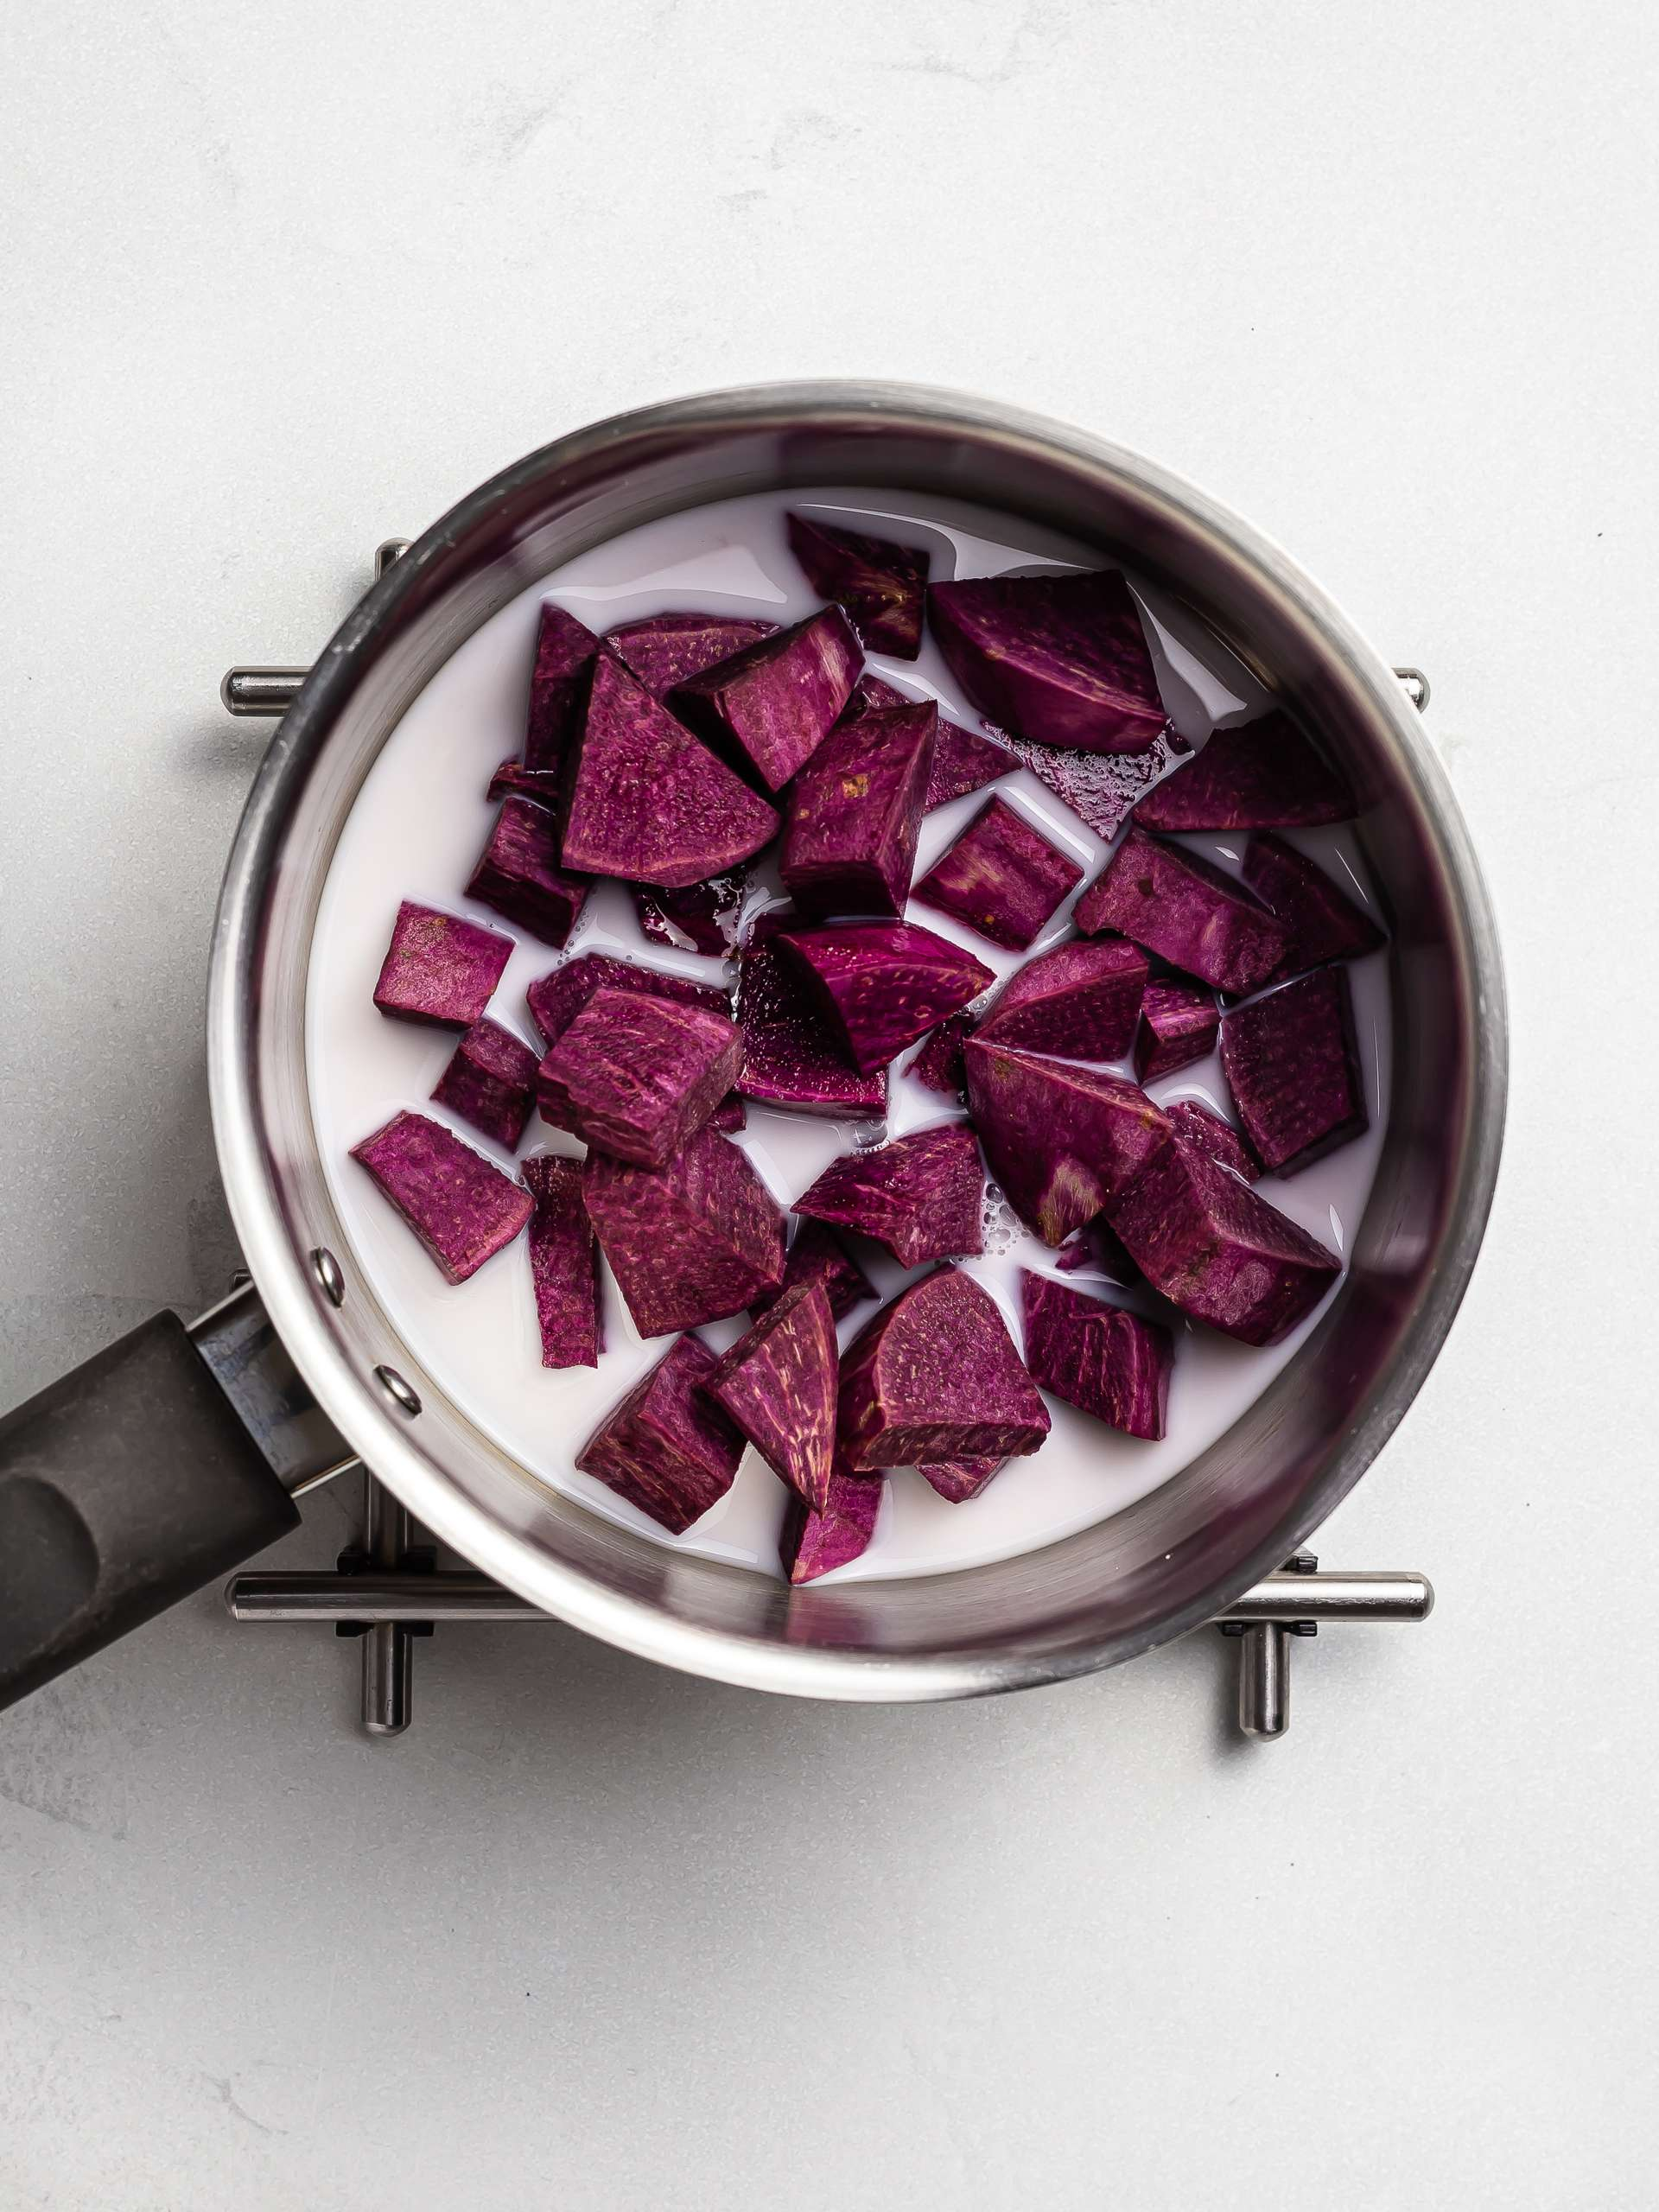 purple yam ube cooked with coconut milk